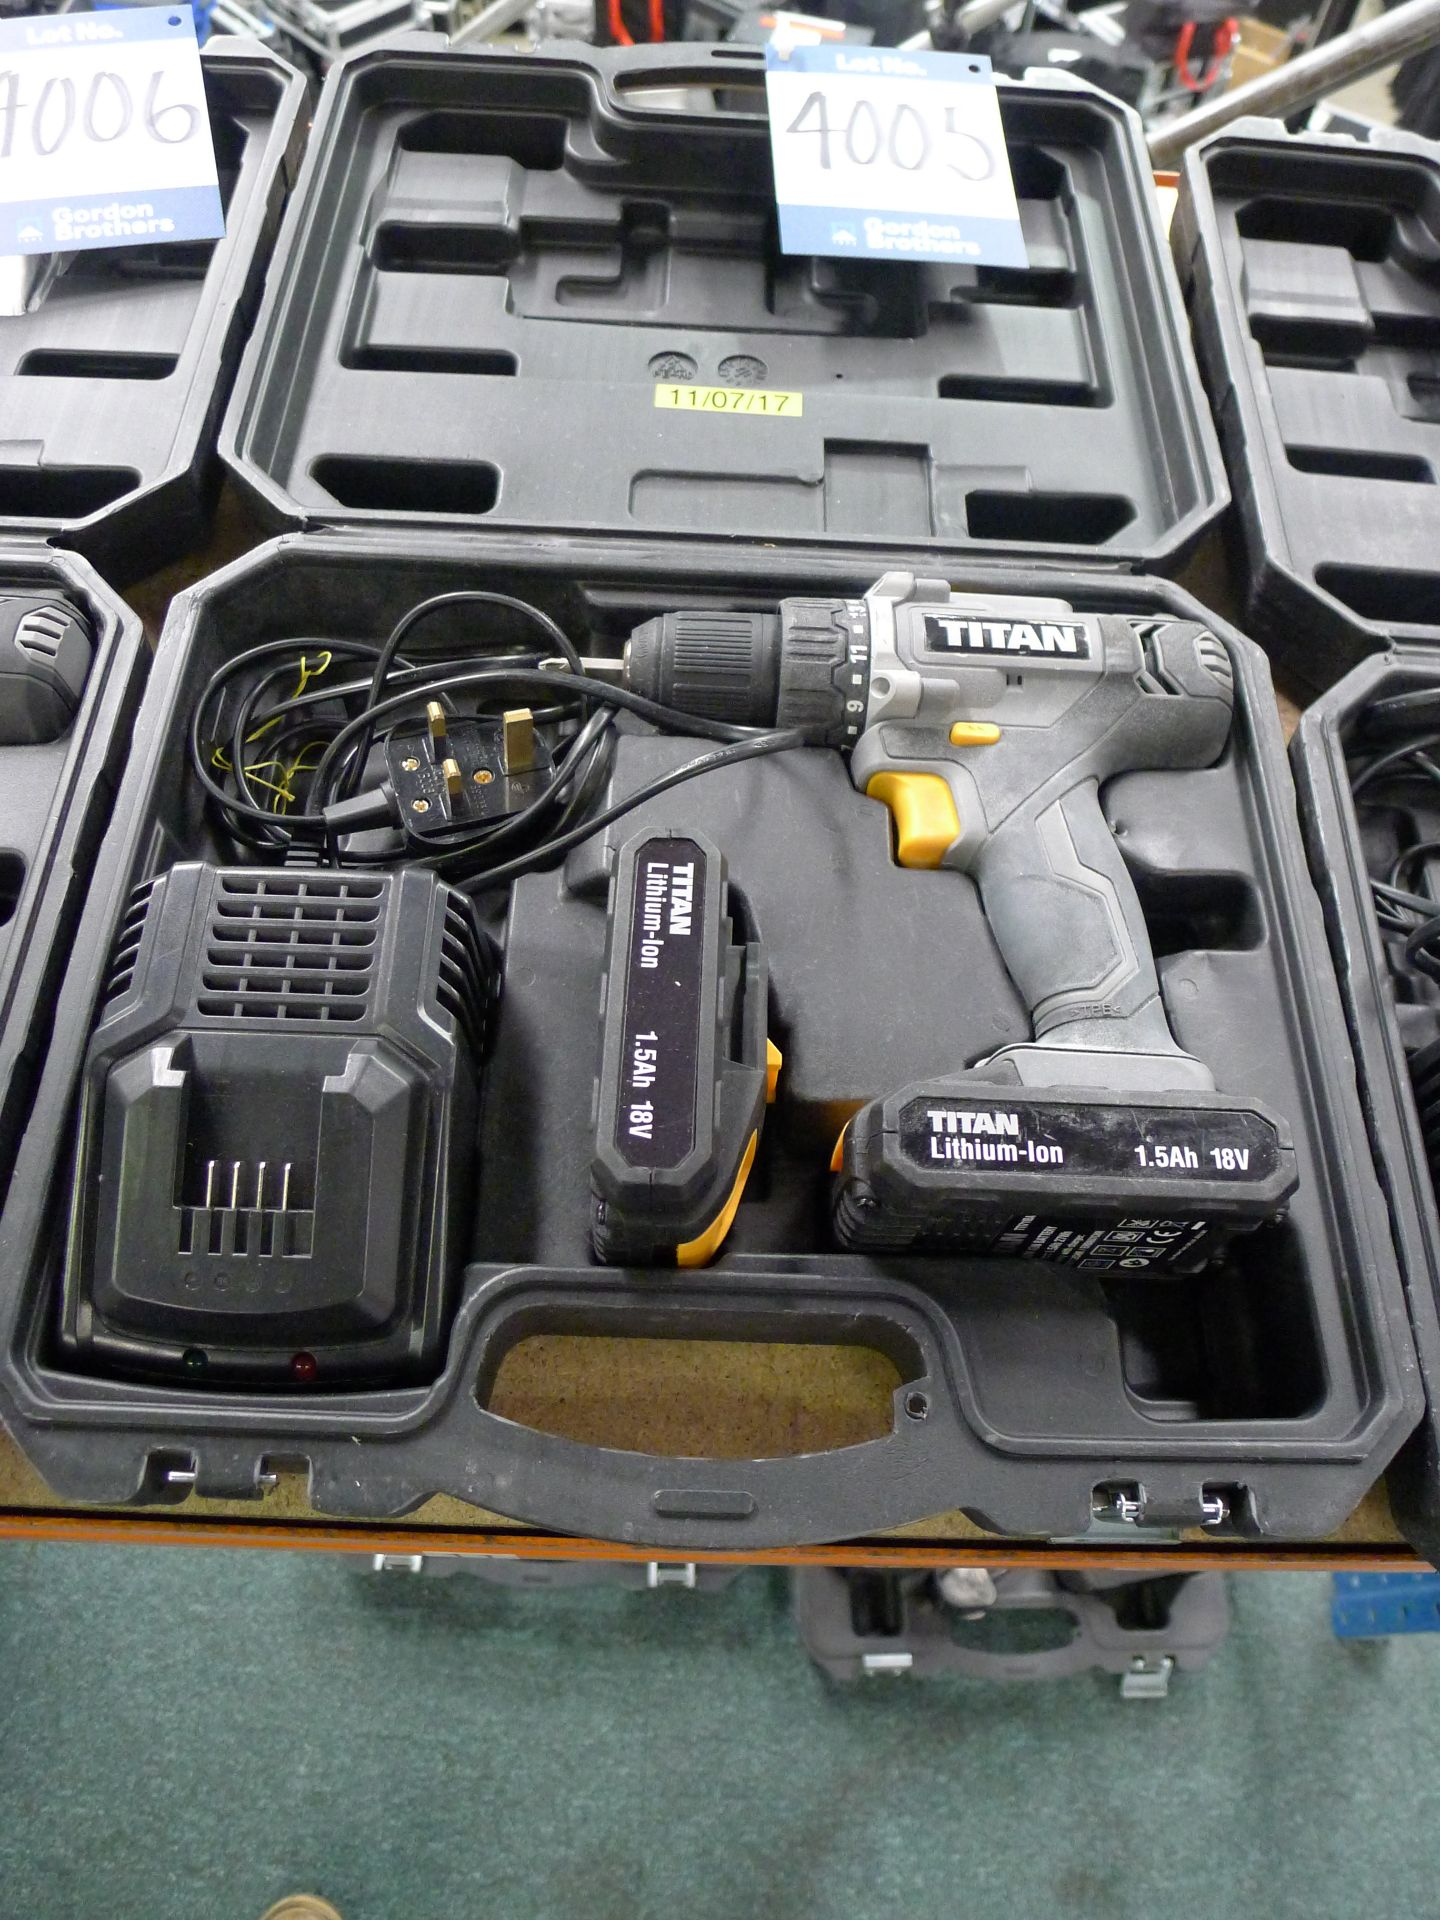 Lot 4005 - Titan 18 V Drill Driver with Charger and Spare Bat